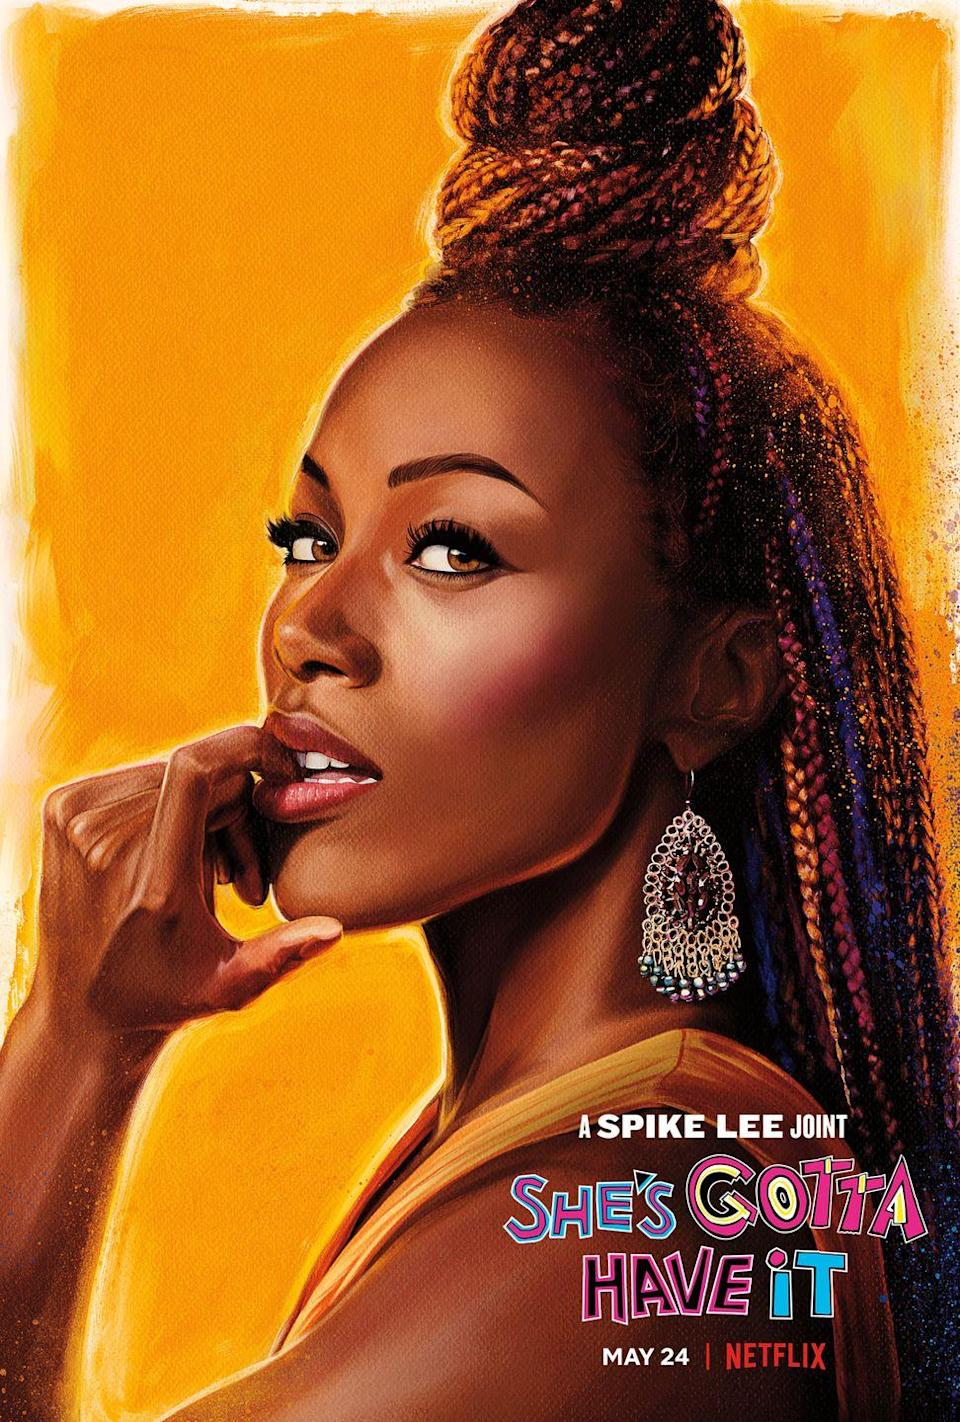 "<p>This is for people who want a steamier kind of romantic dramedy. Spike Lee directs the story of Nola Darling, a woman juggling three suitors whose resistance to monogamy is challenged when the three men find out about each other.</p><p><a class=""link rapid-noclick-resp"" href=""https://www.netflix.com/title/80117554"" rel=""nofollow noopener"" target=""_blank"" data-ylk=""slk:WATCH NOW"">WATCH NOW</a></p>"